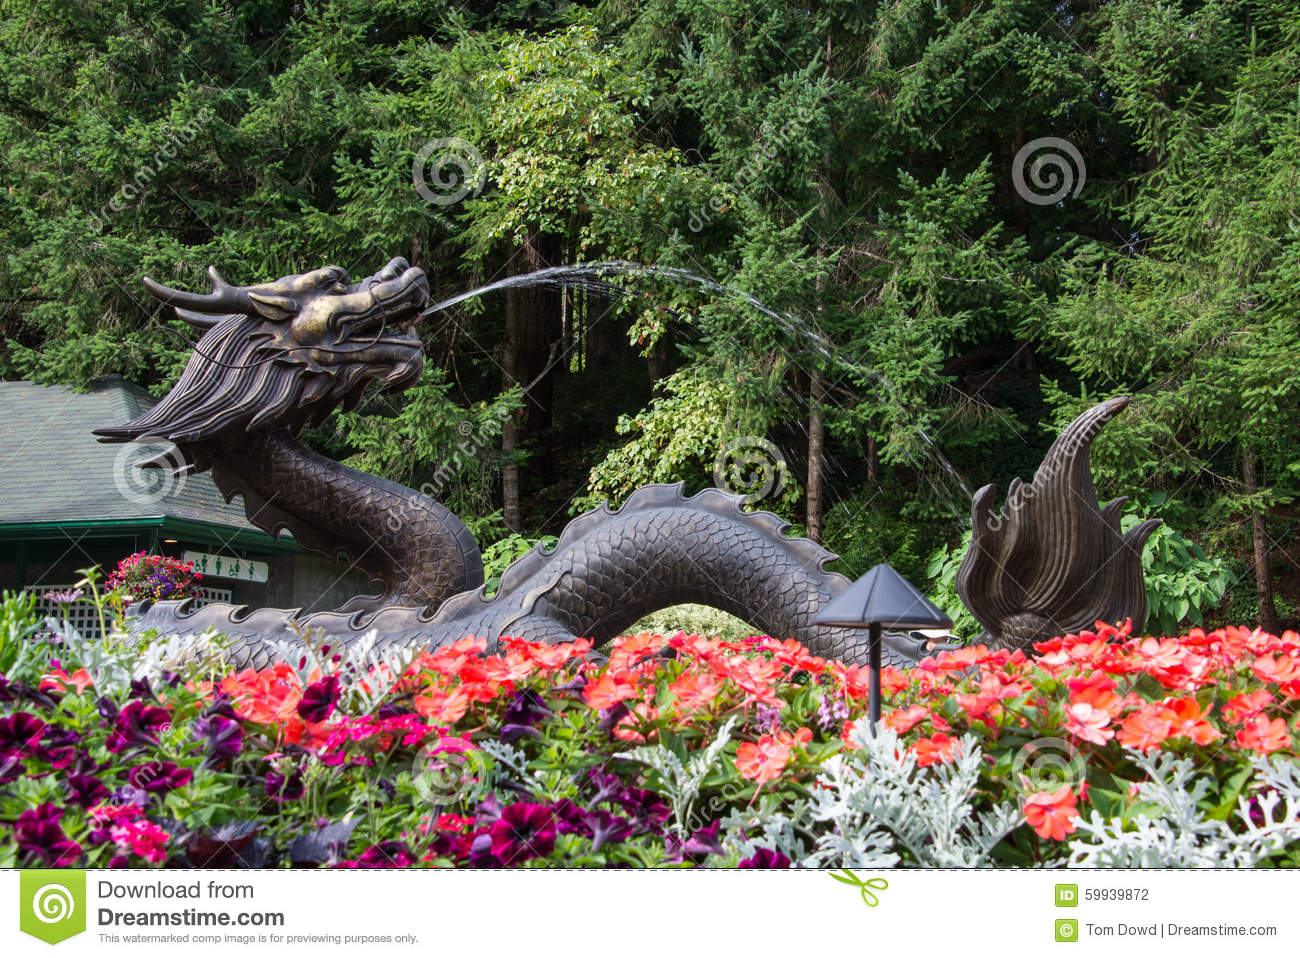 Fountain butchart gardens victoria bc canada stock photo fountain butchart gardens victoria bc canada thecheapjerseys Choice Image